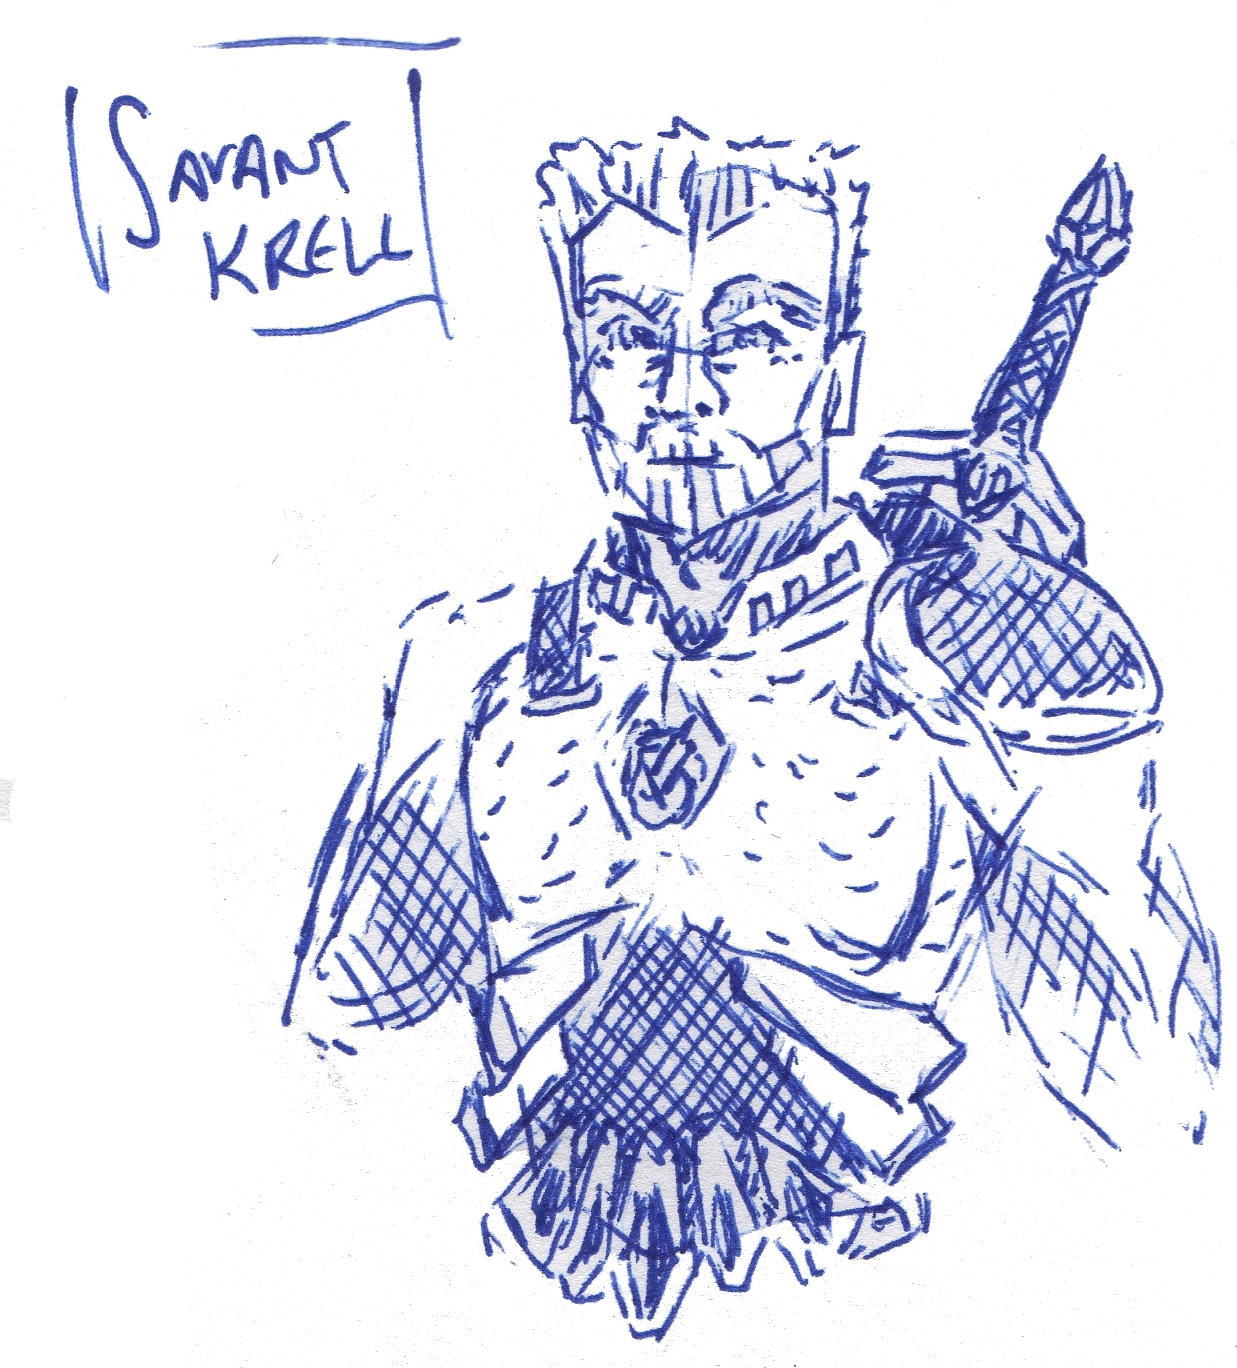 savant krell sketch